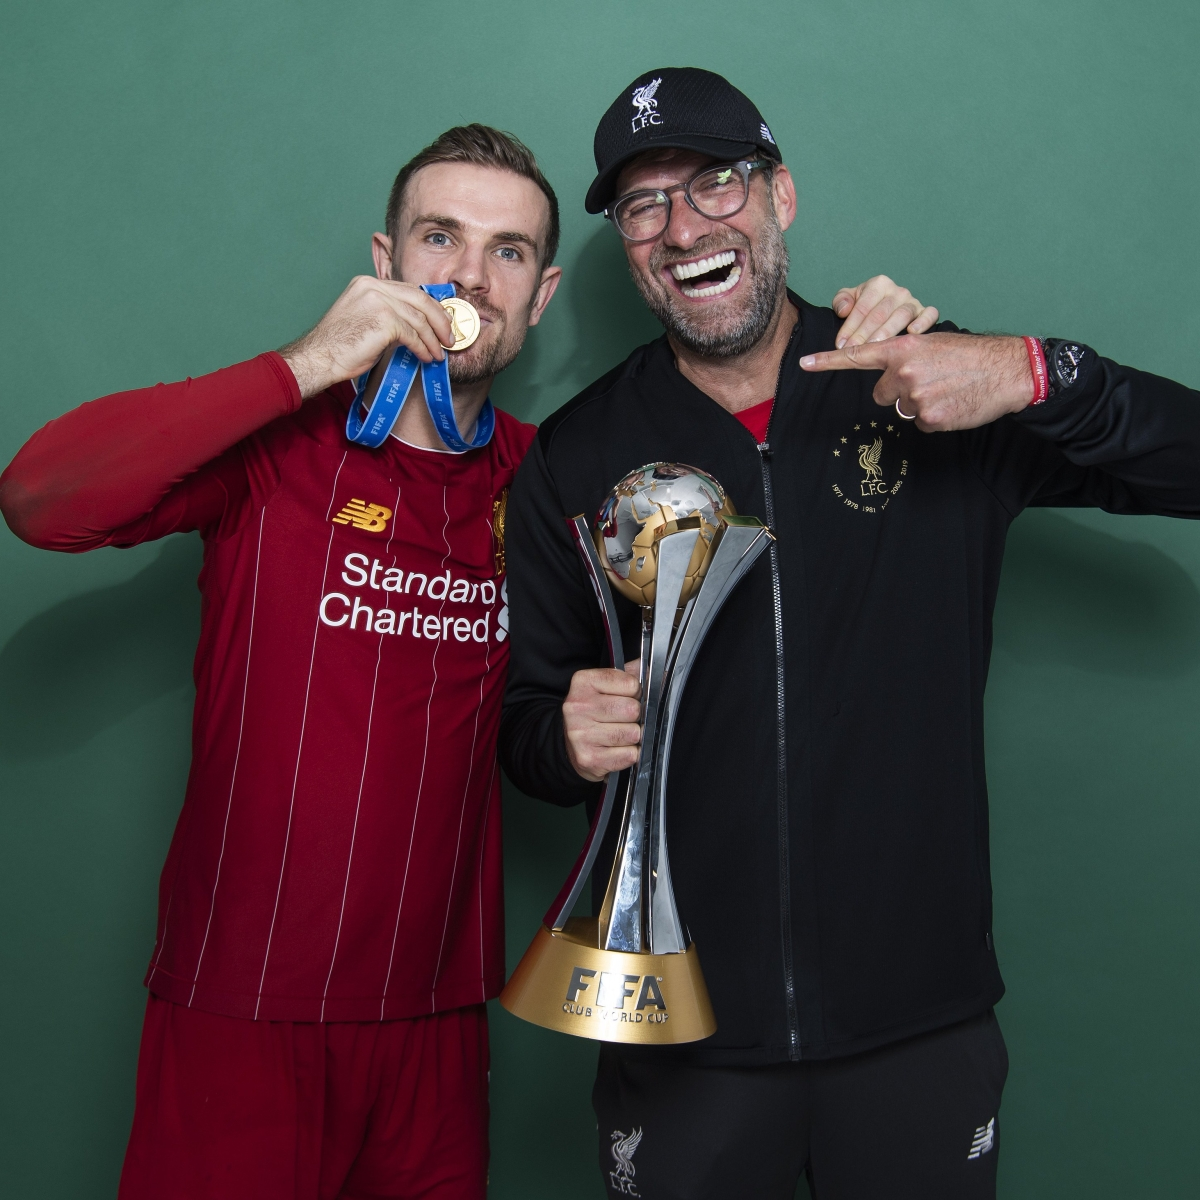 Liverpool manager Jurgen Klopp and captain Jordan Henderson pay tribute to 96 victims of Hillsborough disaster